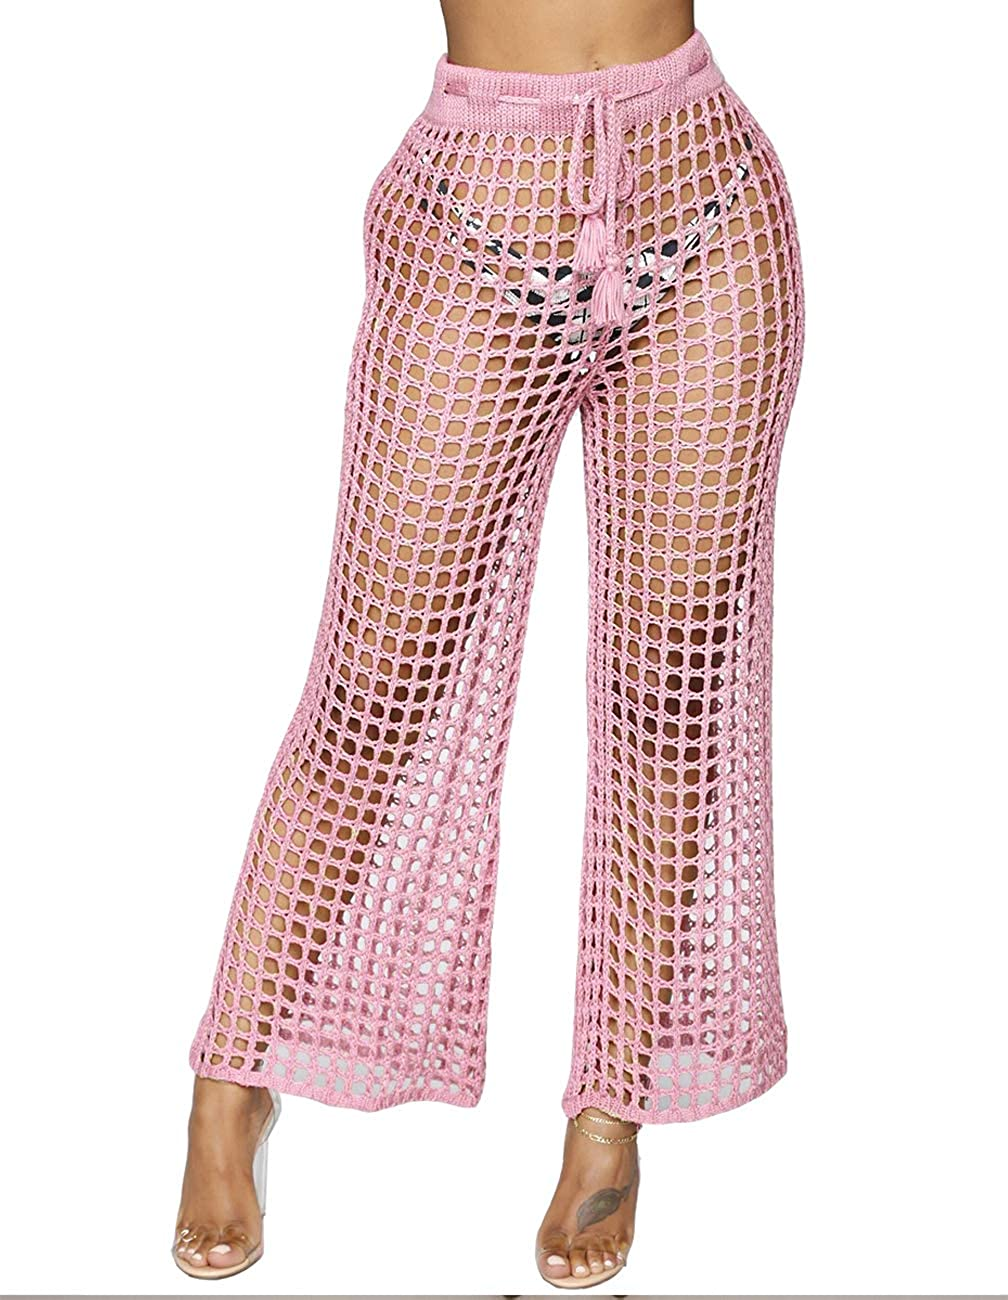 b3c50359e5c08 Cover Up Pants Swimwear - Womens Sexy High Waist Net Hollow Out Crochet  Pants Coverups at Amazon Women's Clothing store: